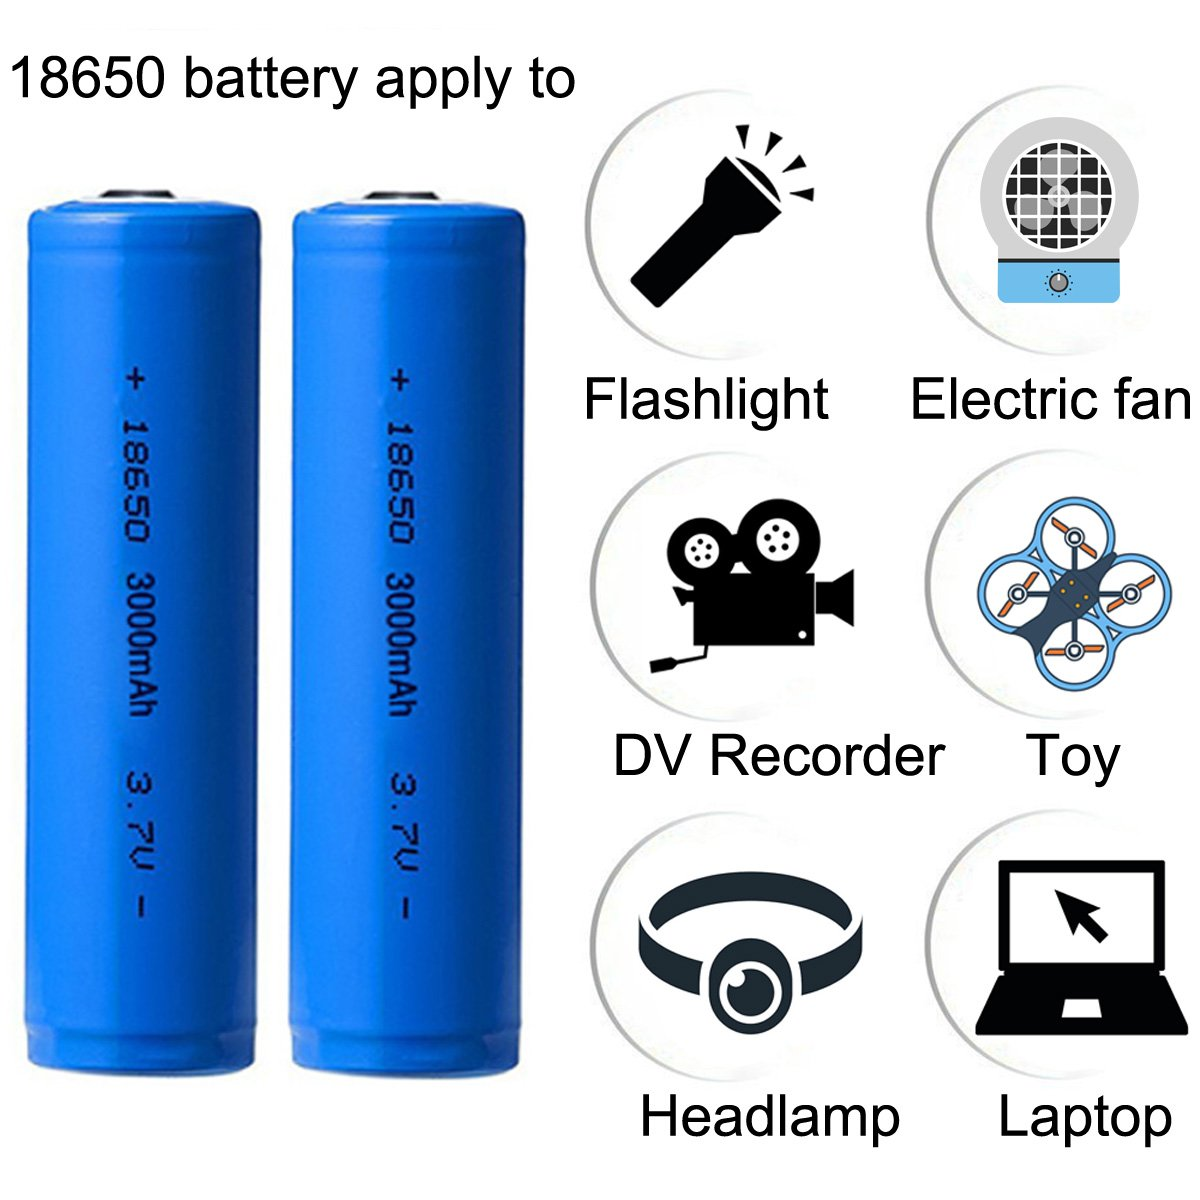 4pcs 18650 Batteries 3000mah 37v Li Ion Rechargeable Battery With Details About 3 X Case Box Protection Circuit Usb Charger For 26650 14500 Widely Used Flashlight